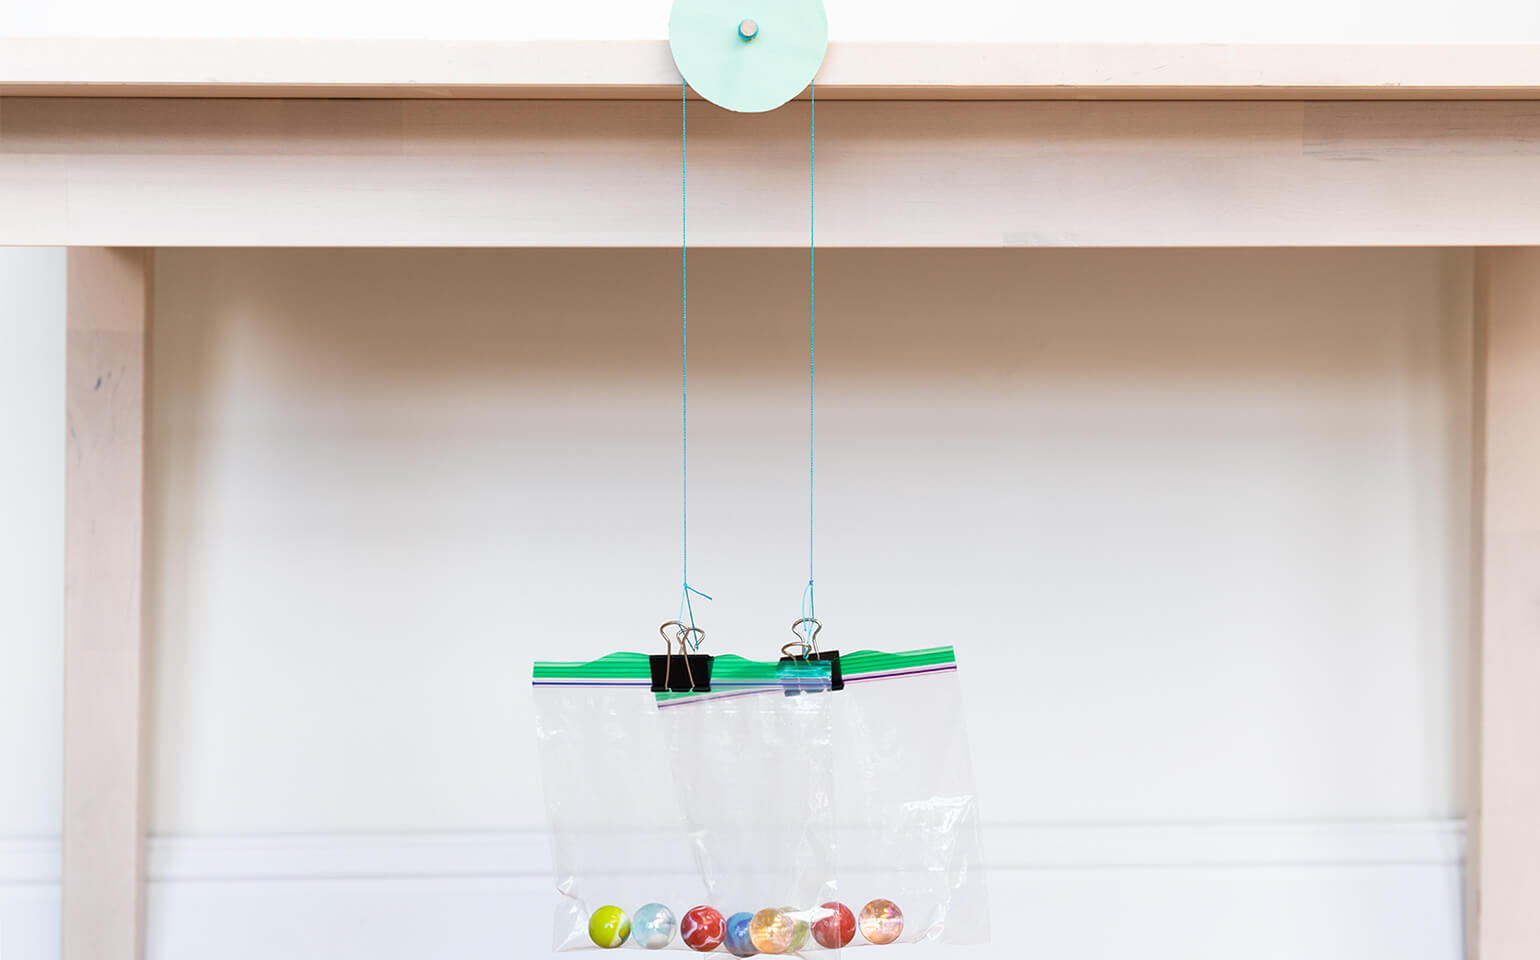 Playing-With-Pulleys-Body-6-2x